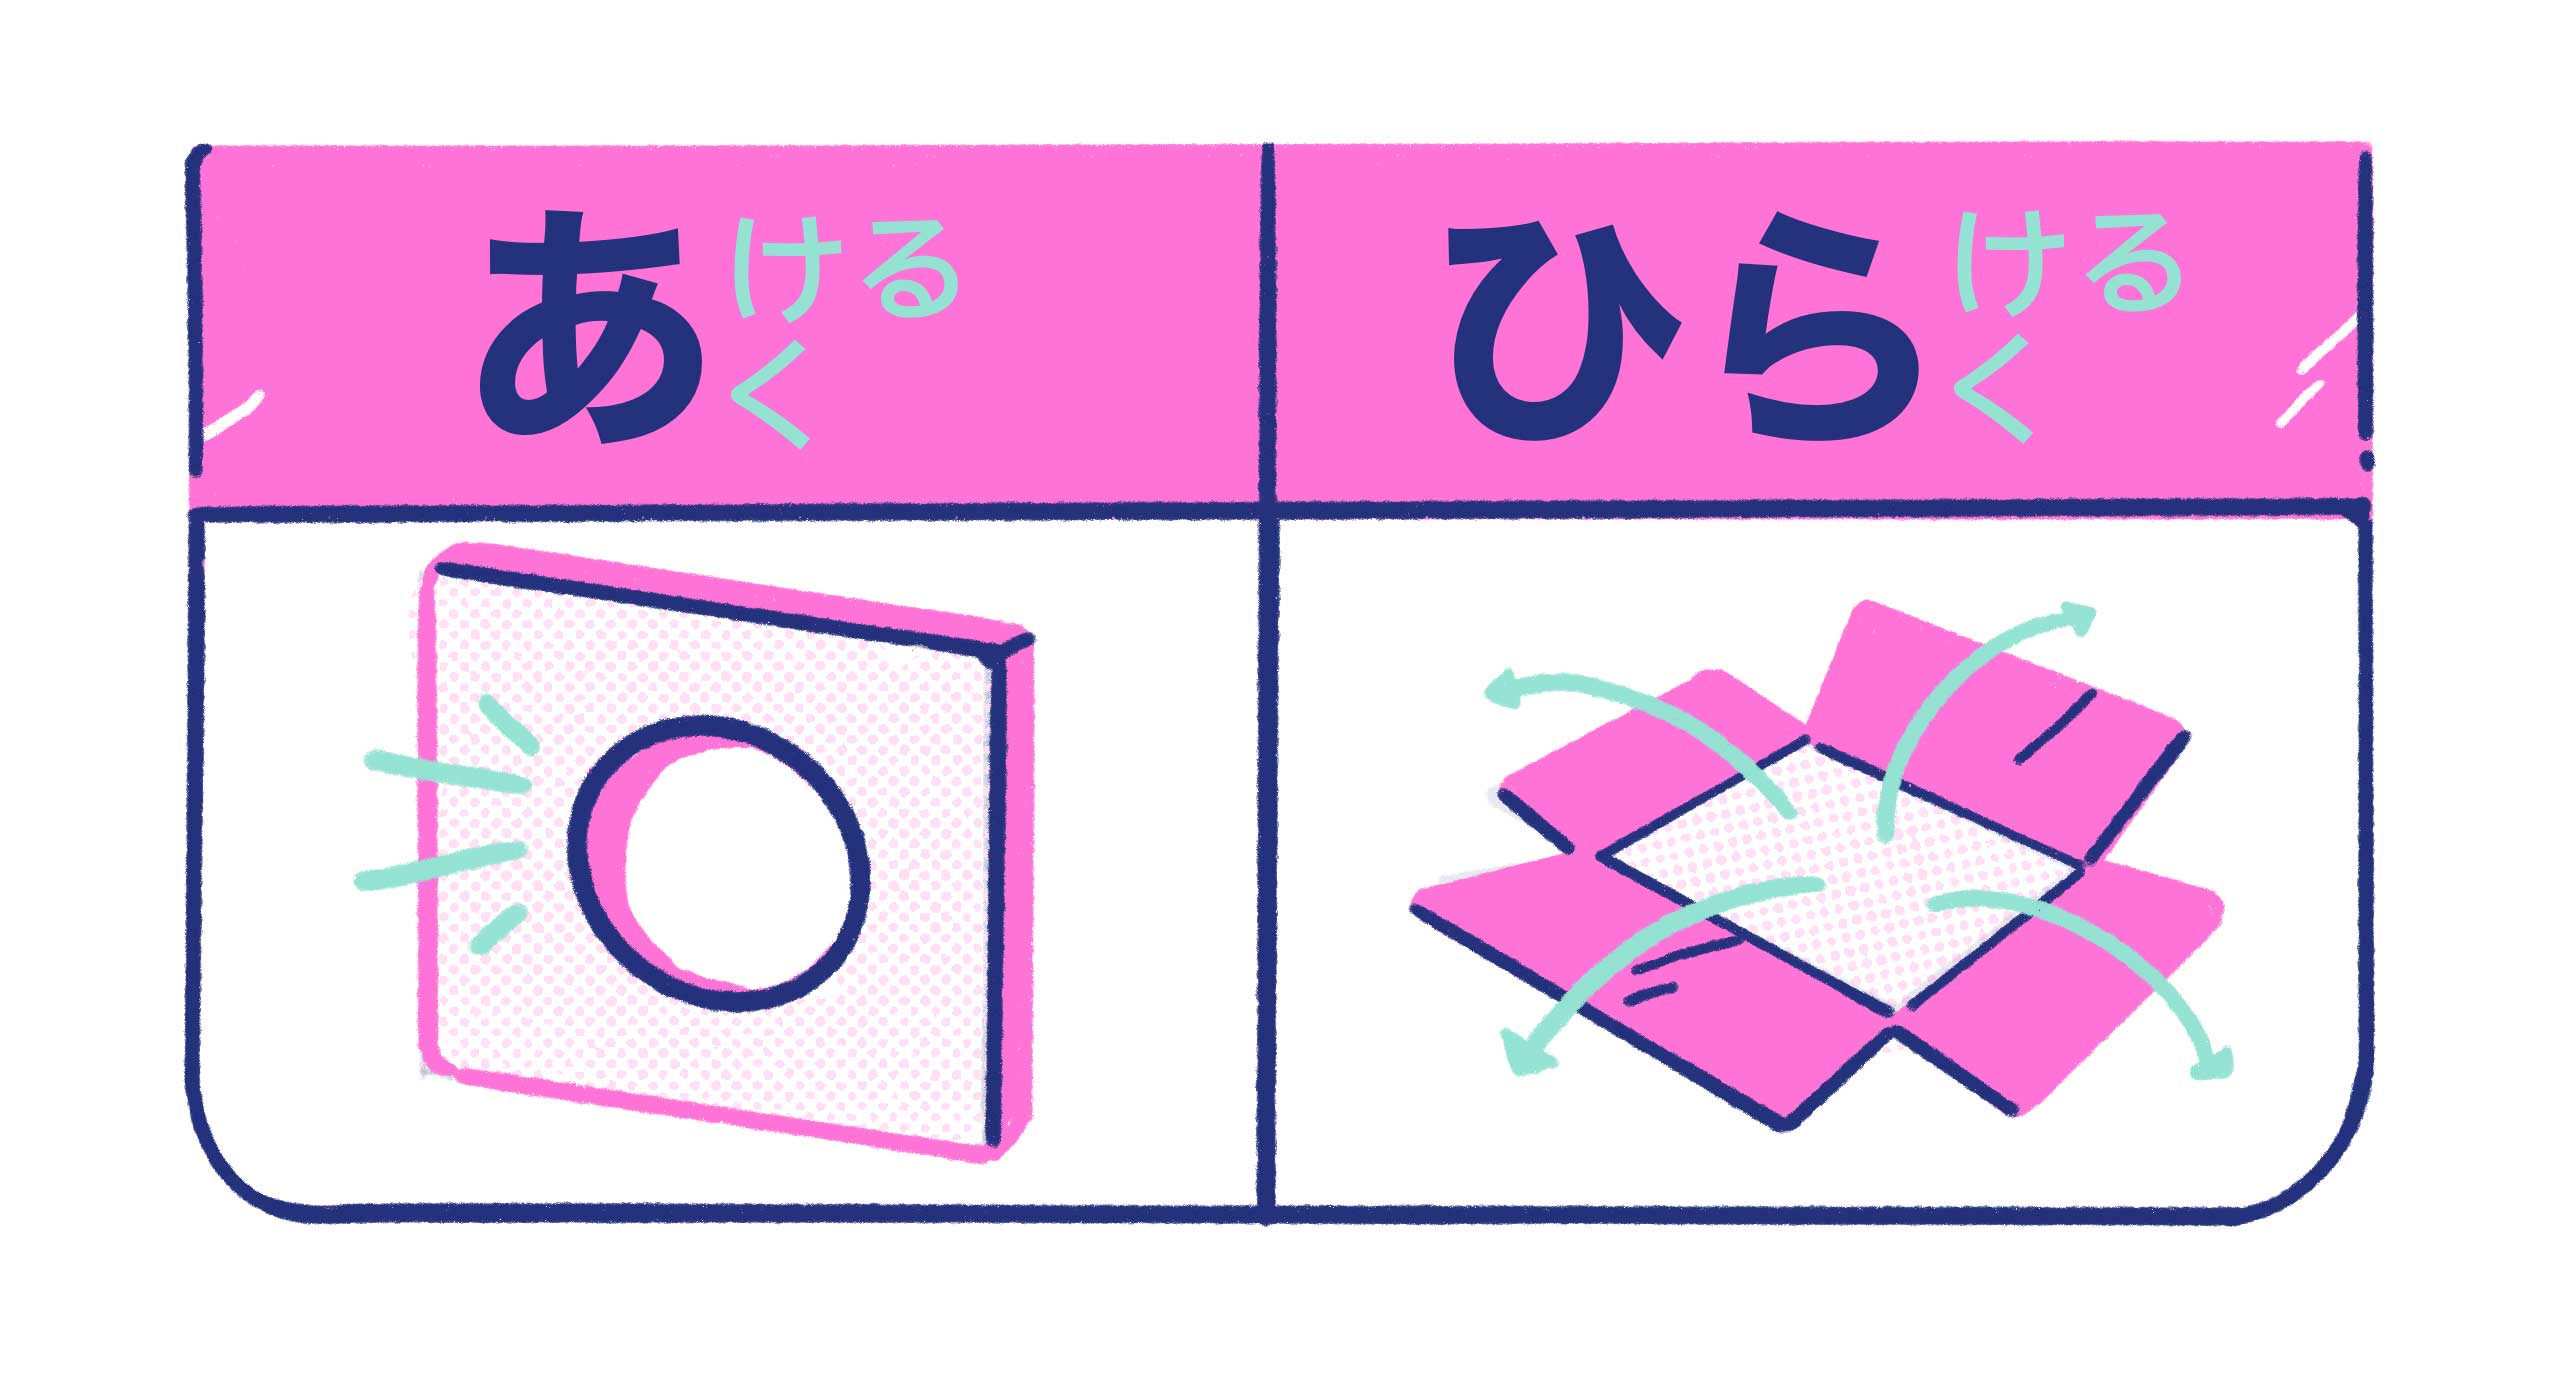 a wall with a hole for あける/あく and an opened box for ひらける/ひらく